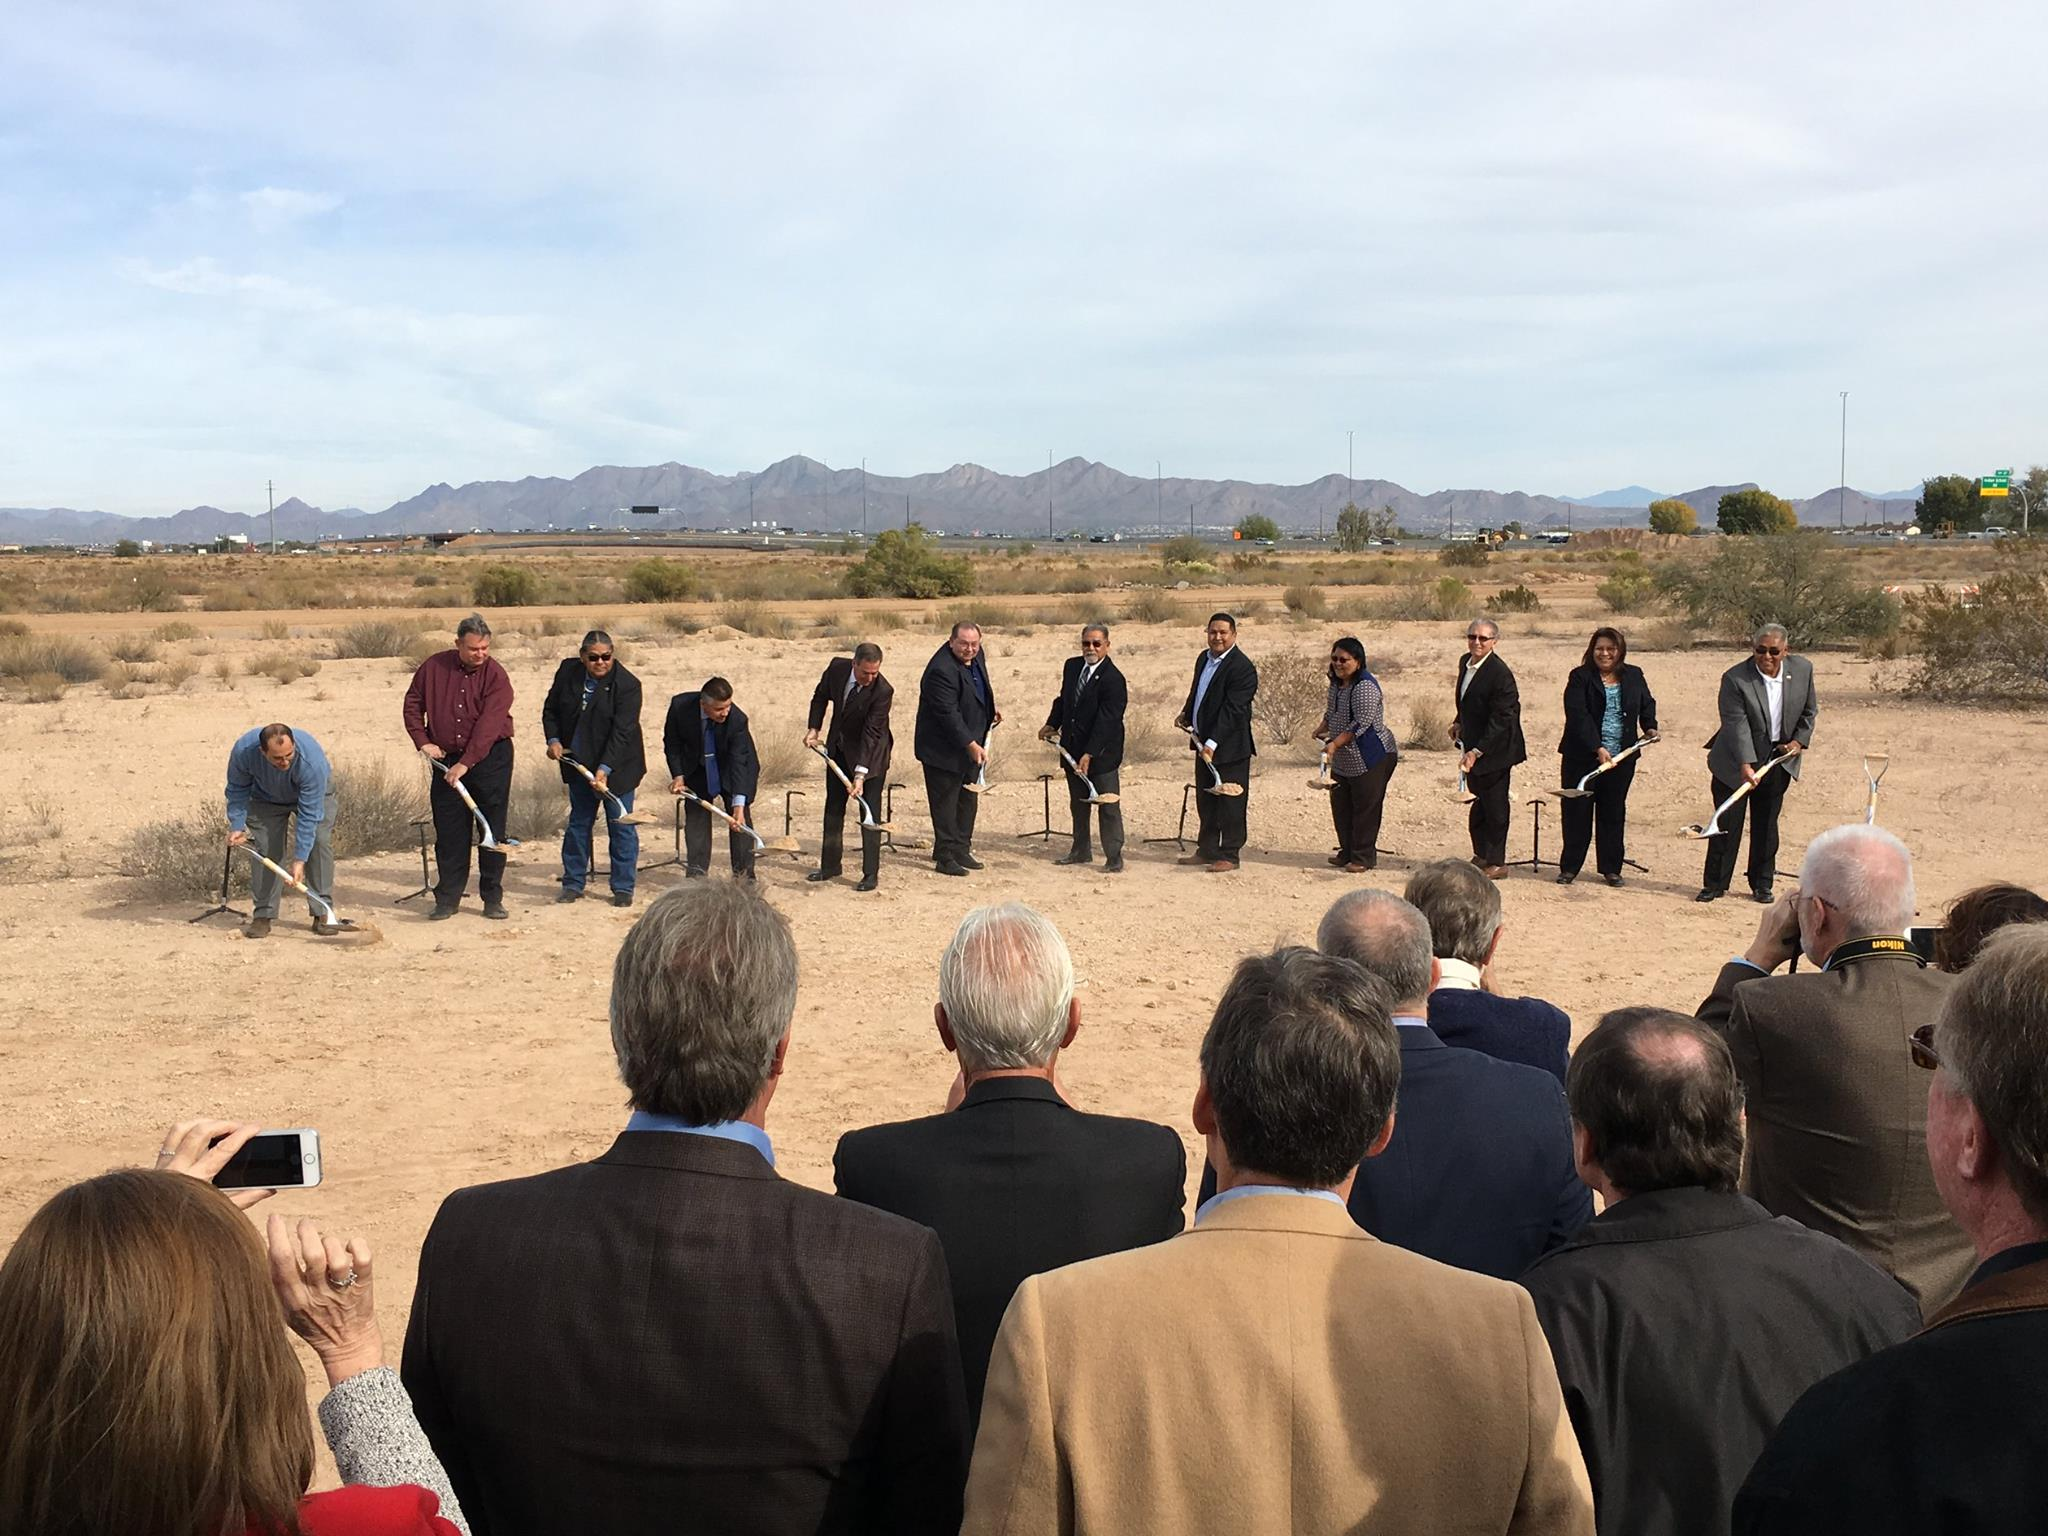 Salt River Pima-Maricopa Indian Community hosts $60M auto park